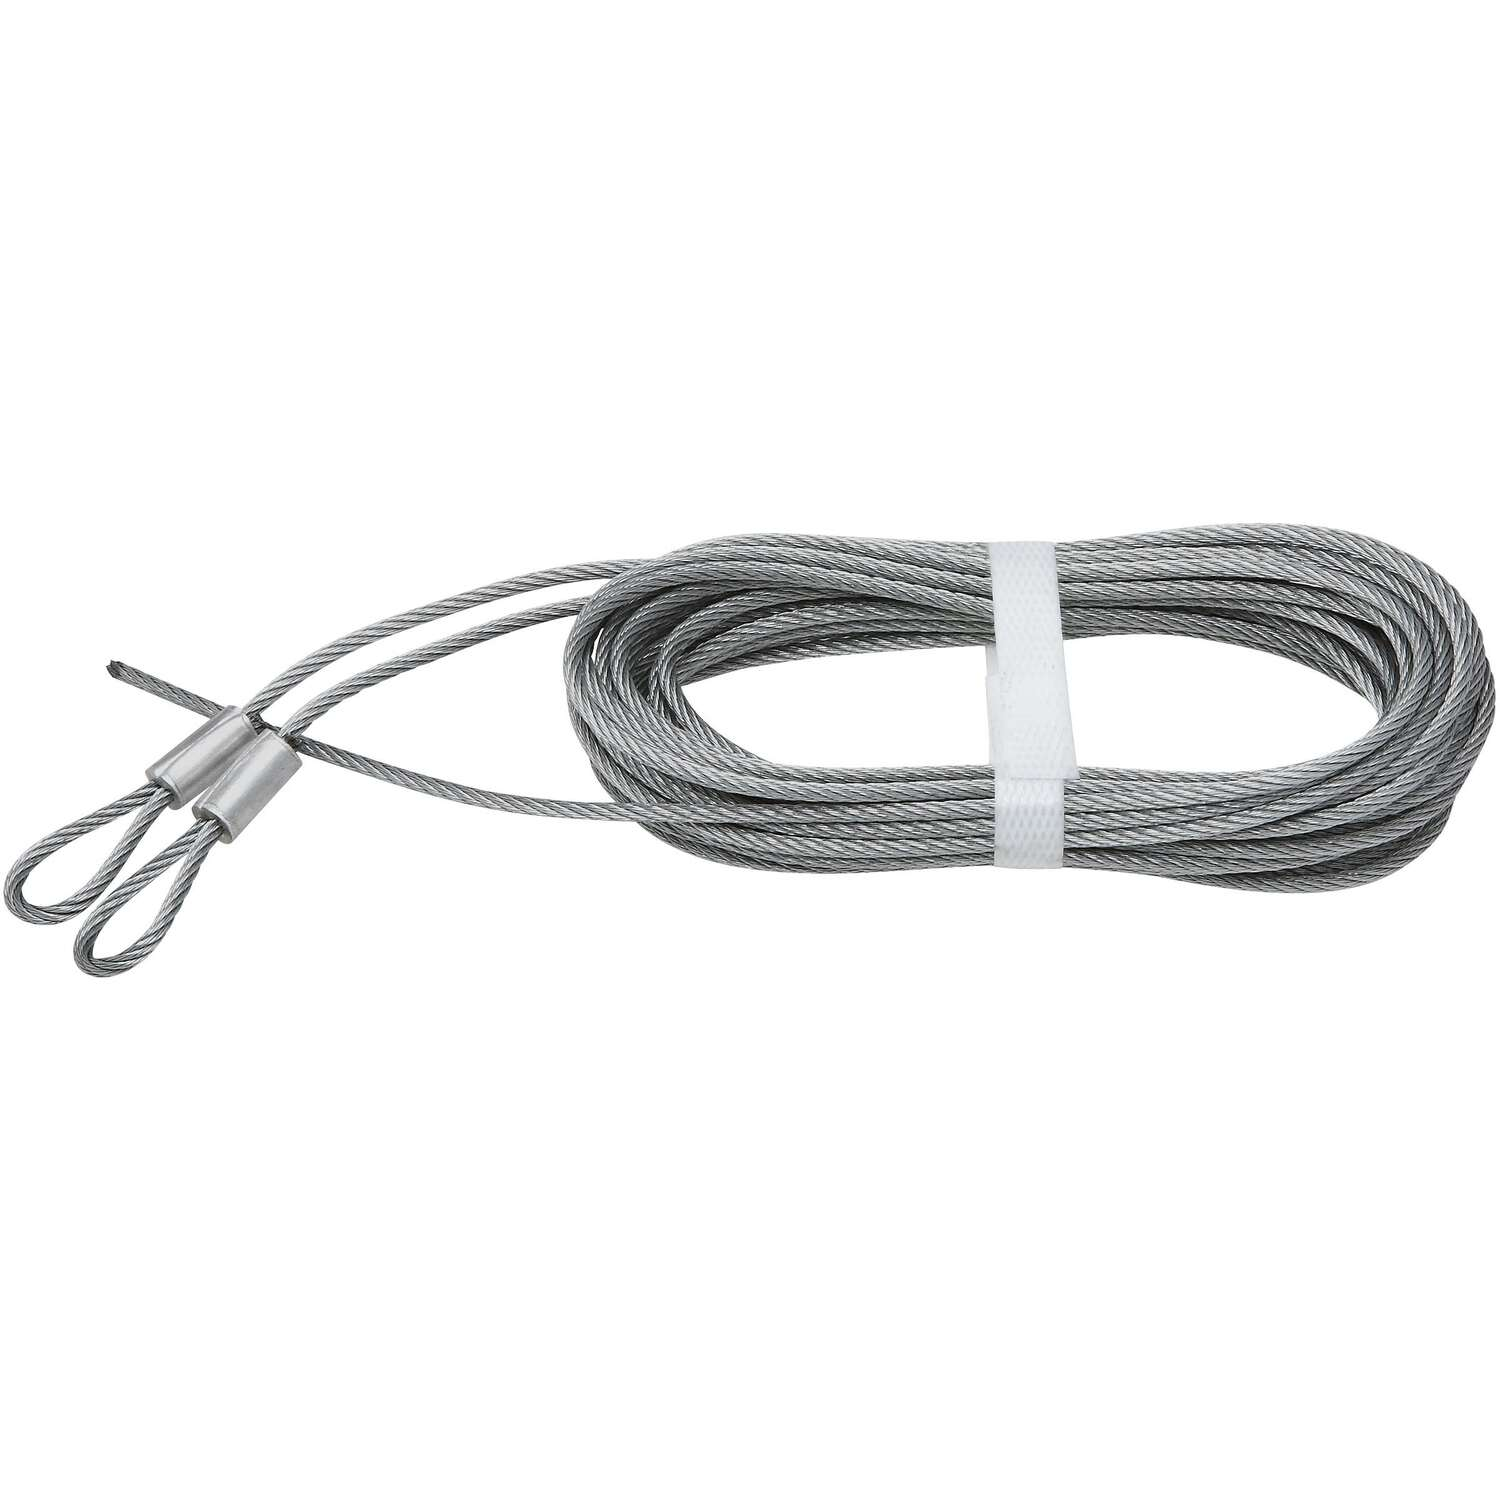 National Hardware  Spring Lift Cables  12 ft. L